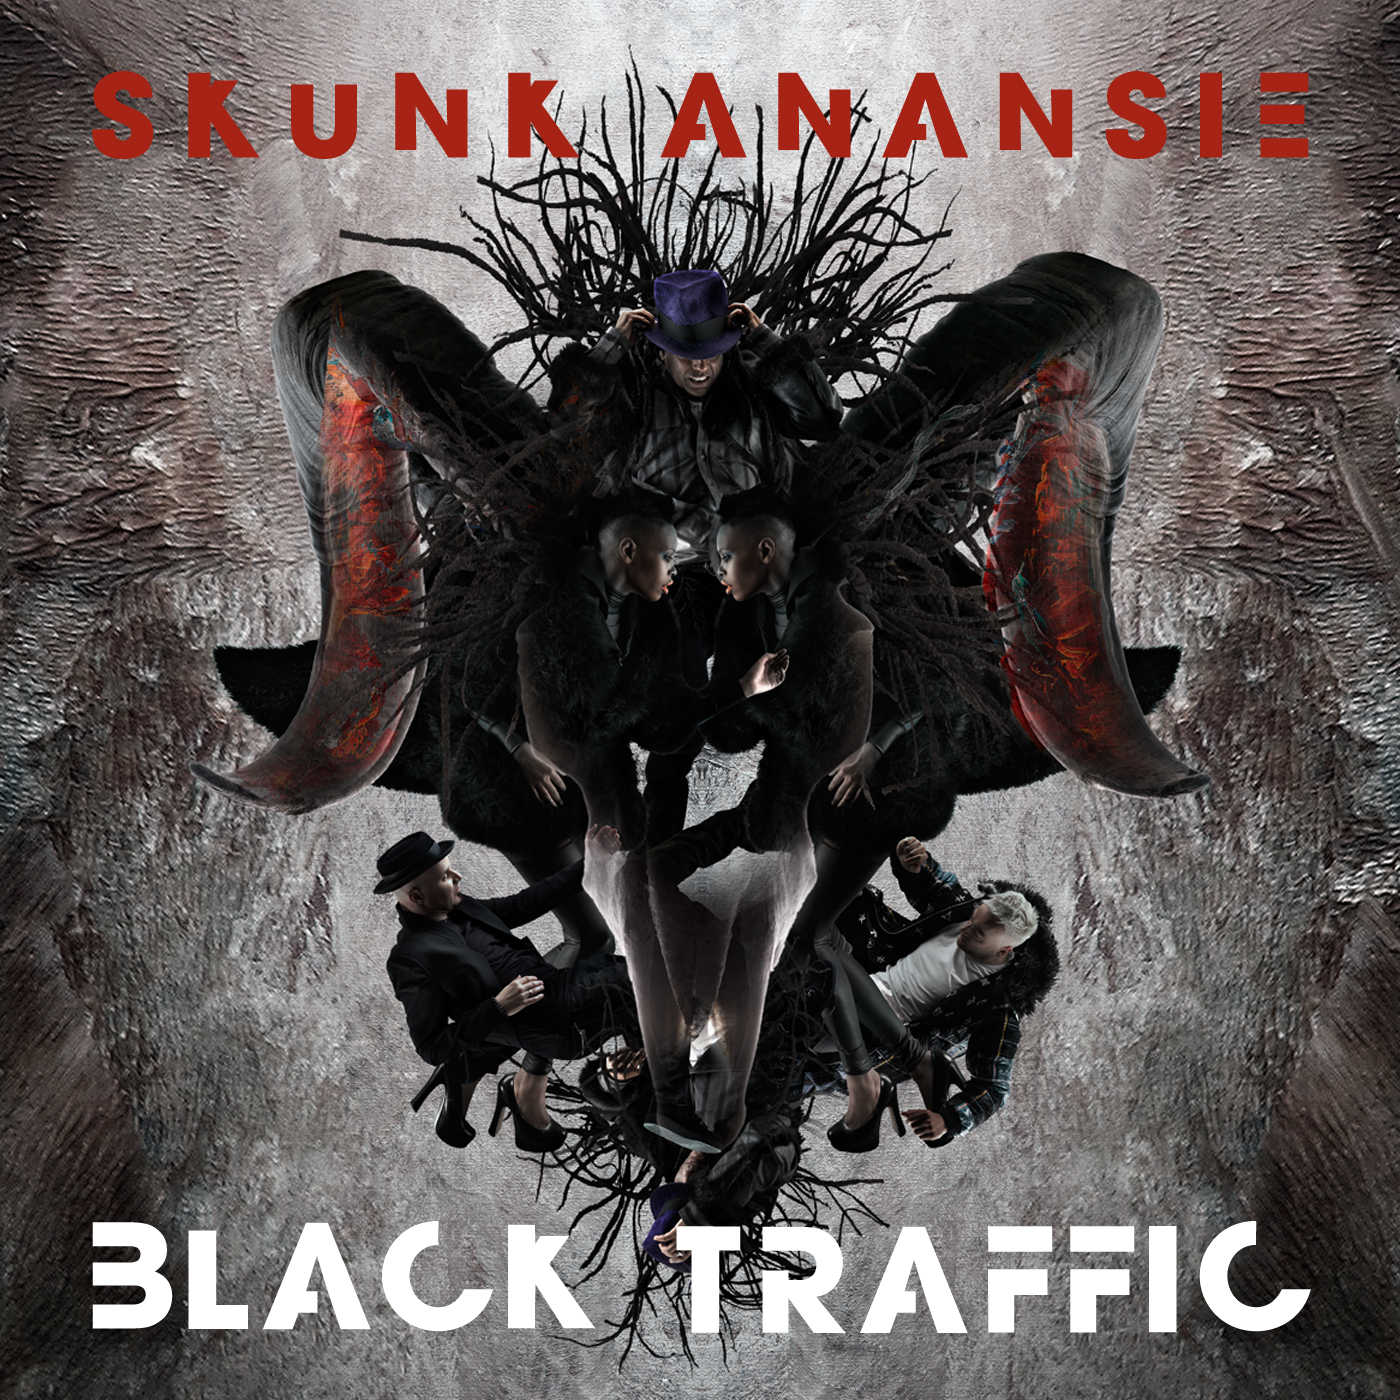 Skunk_Anansie_itubes_red (2)